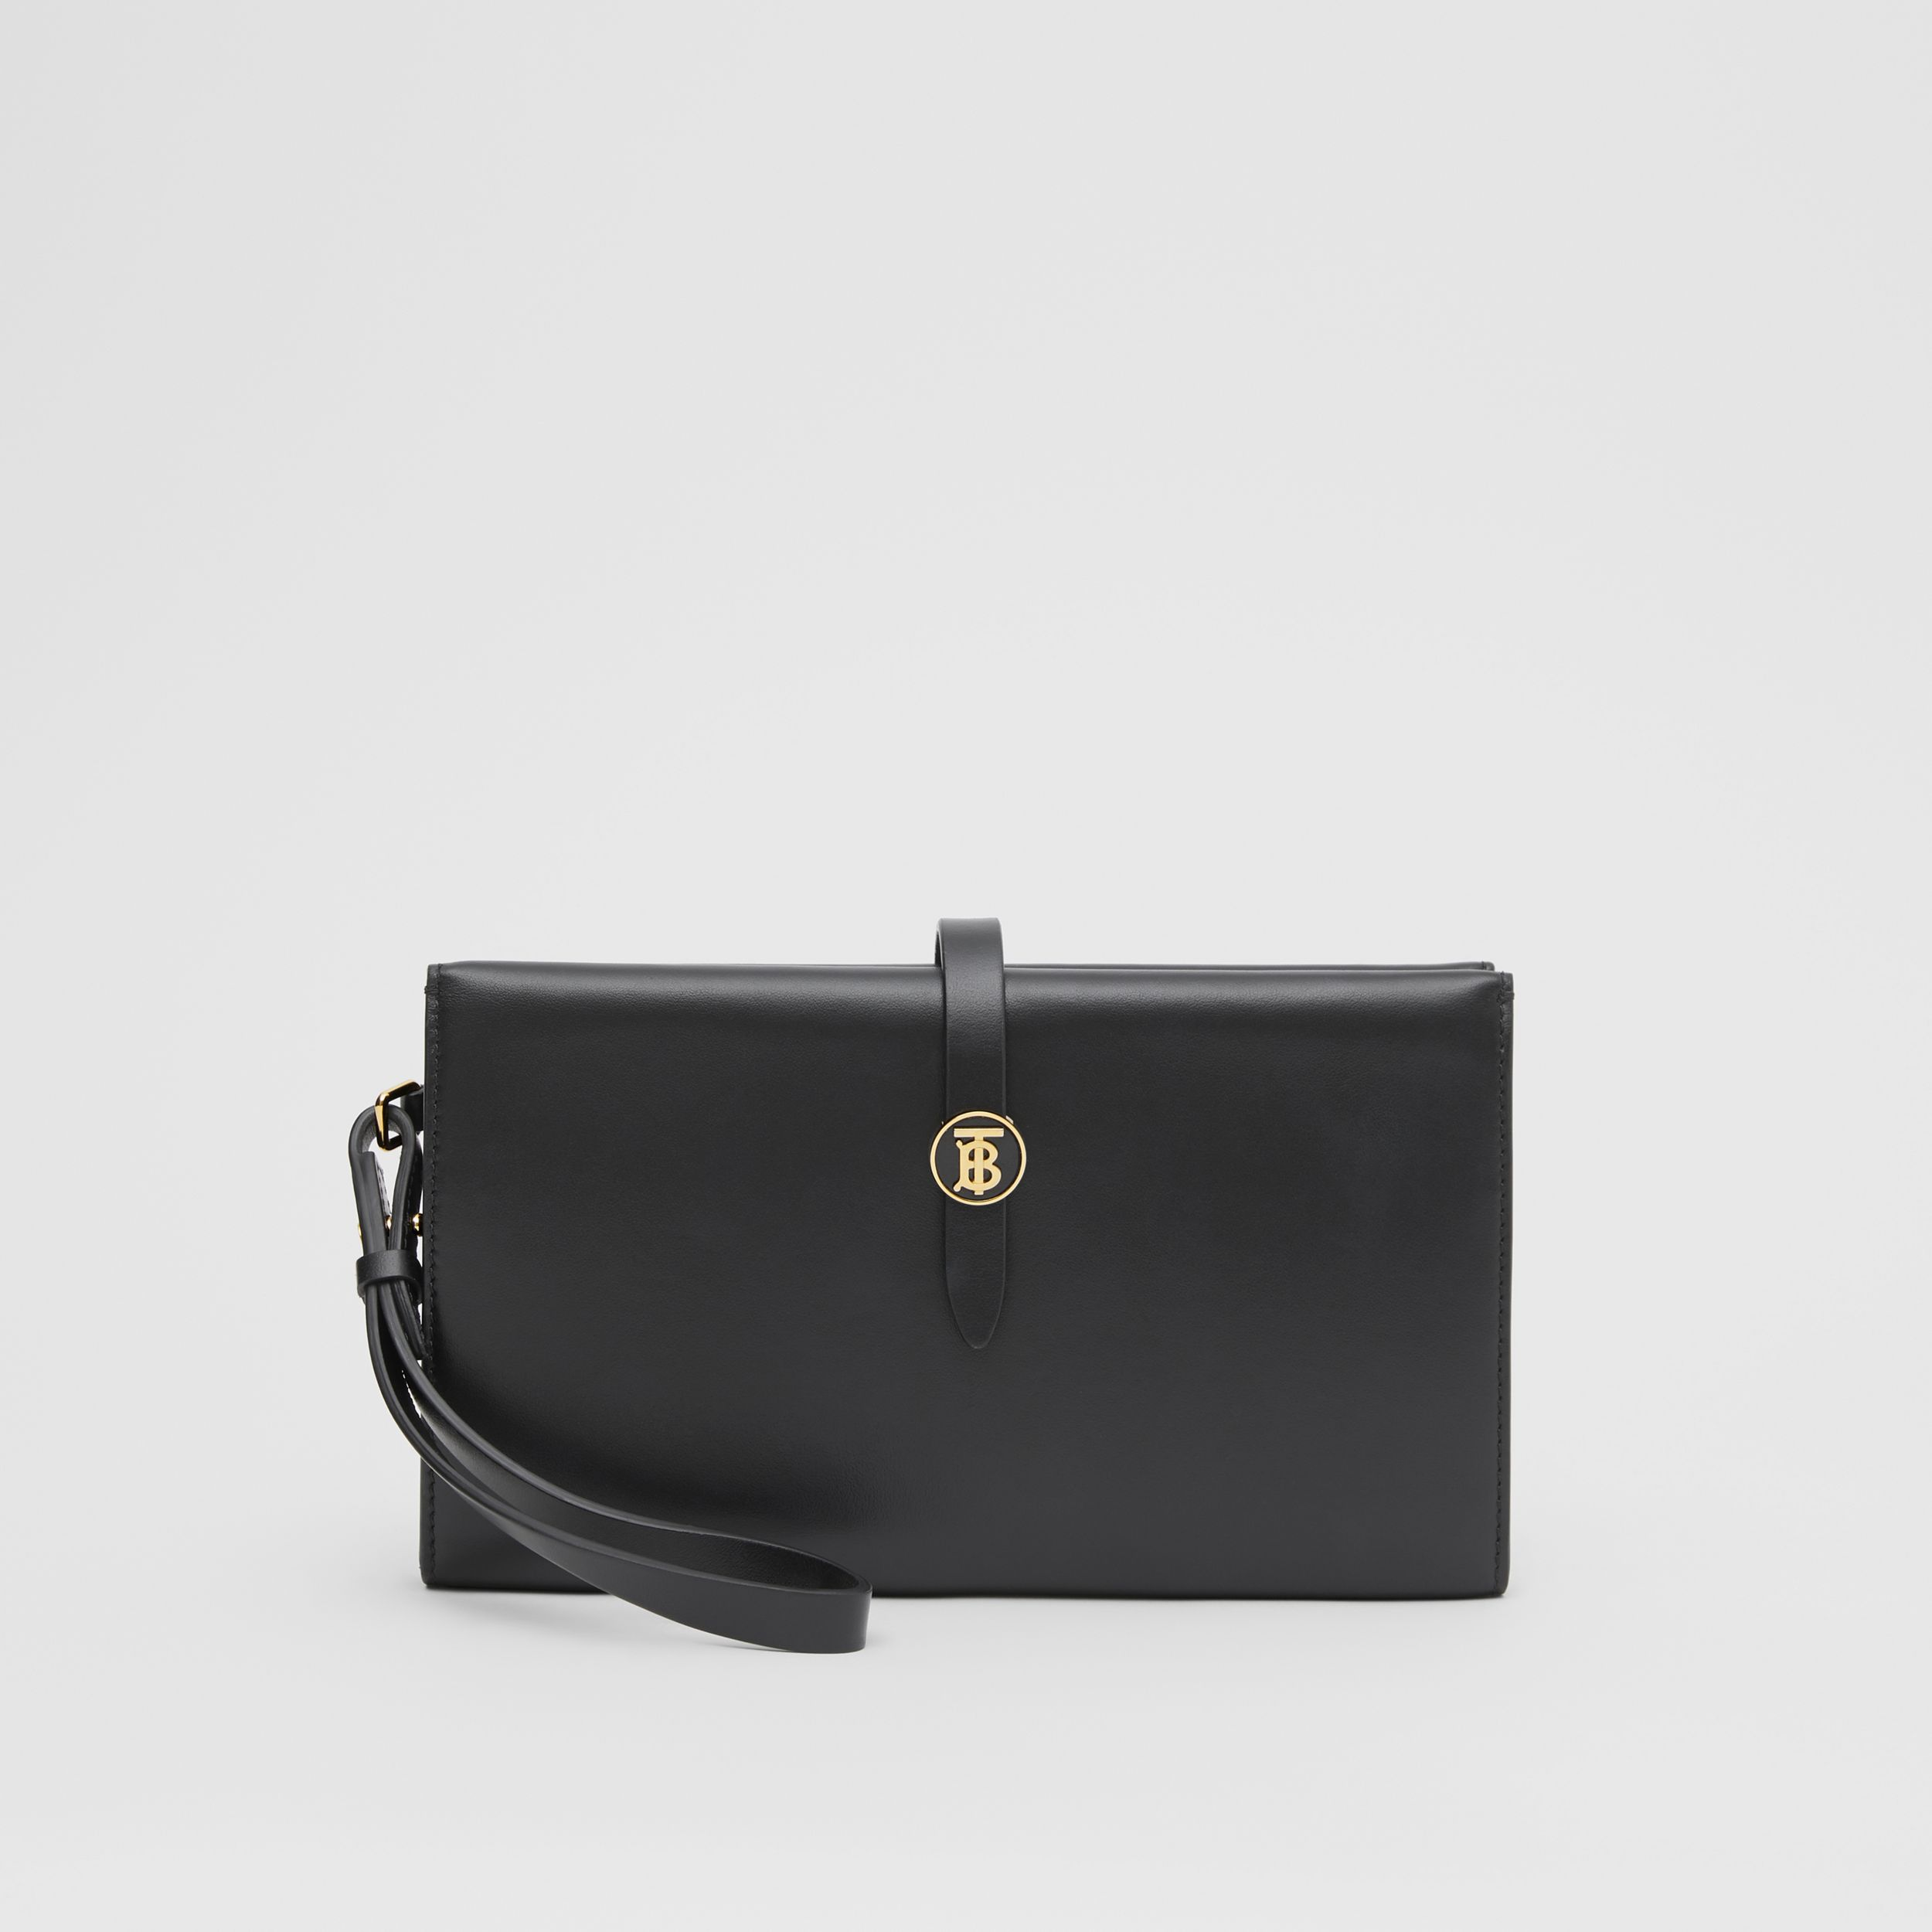 Large Monogram Motif Leather Folding Wallet in Black - Women | Burberry Hong Kong S.A.R. - 1